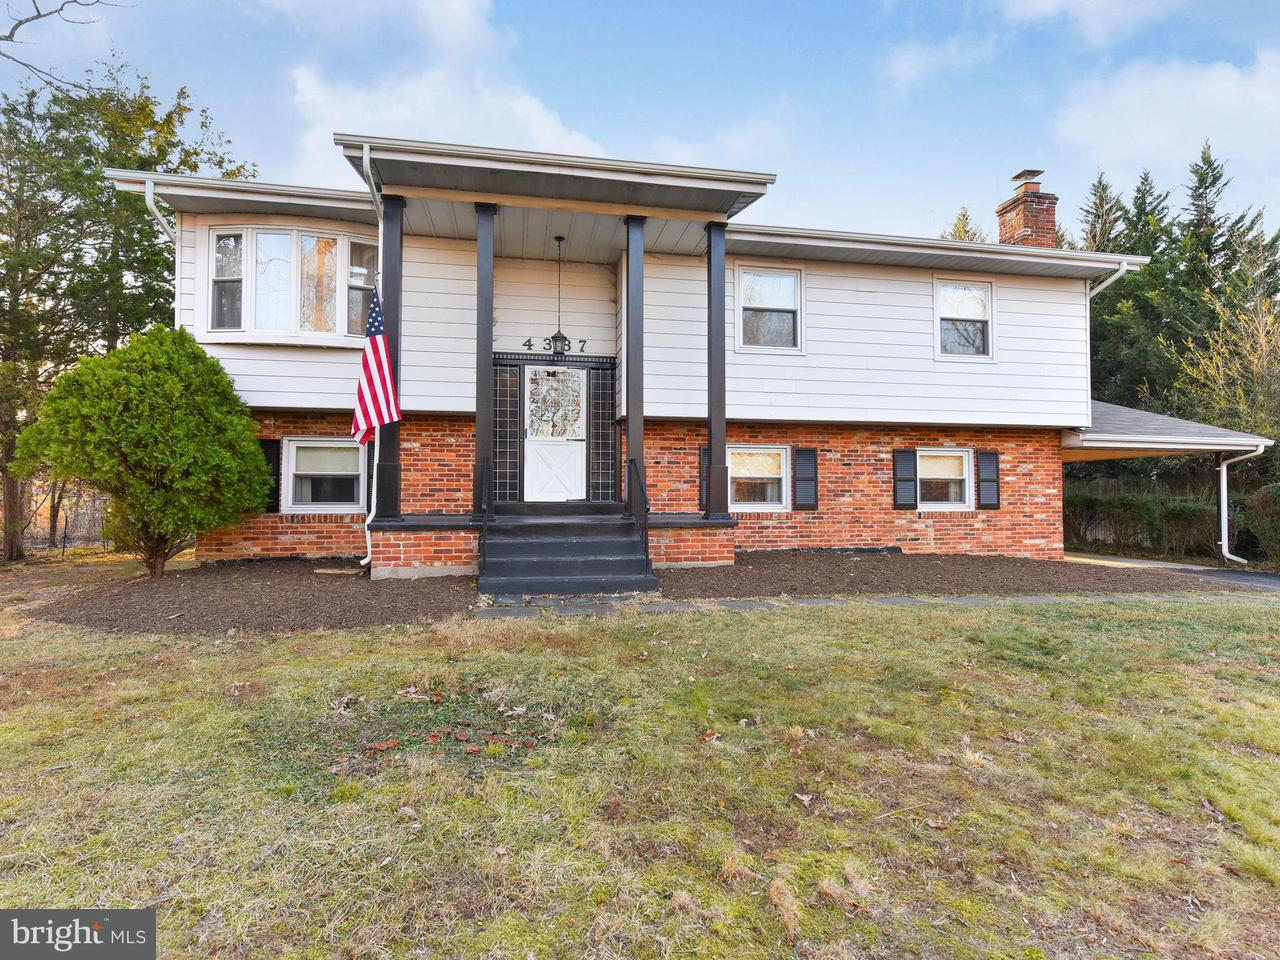 Single Family Home for Sale at 4337 UPLAND Drive 4337 UPLAND Drive Alexandria, Virginia 22310 United States